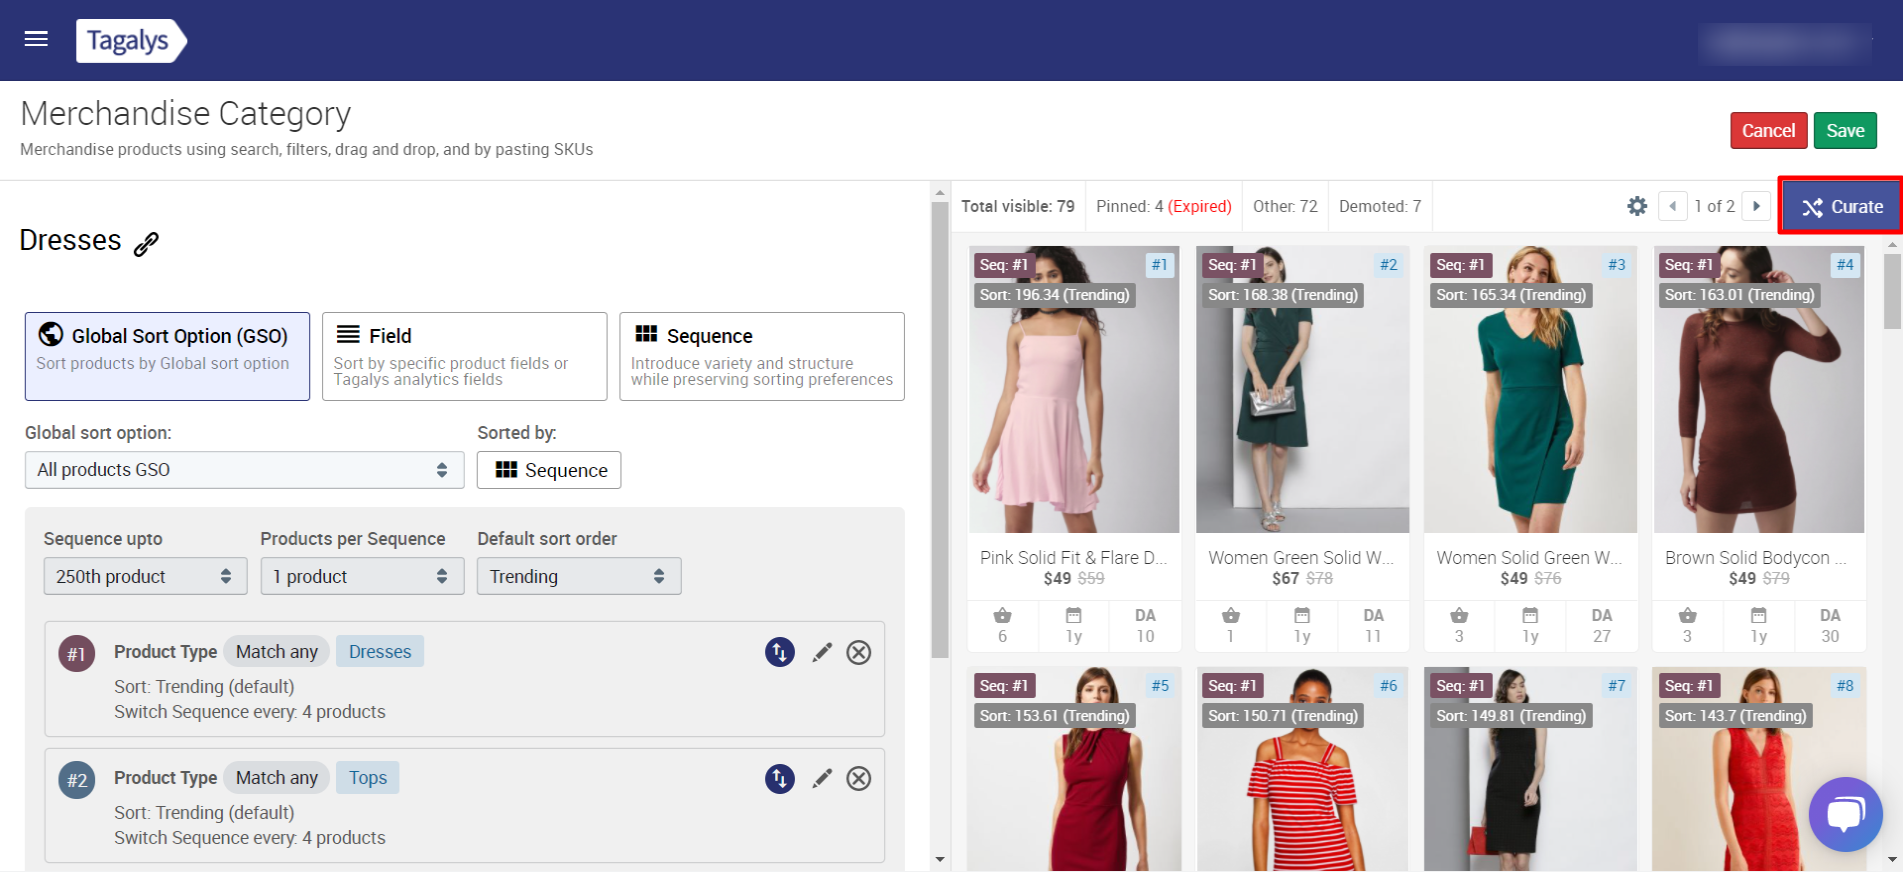 Demote products in a platform created Category or Collection